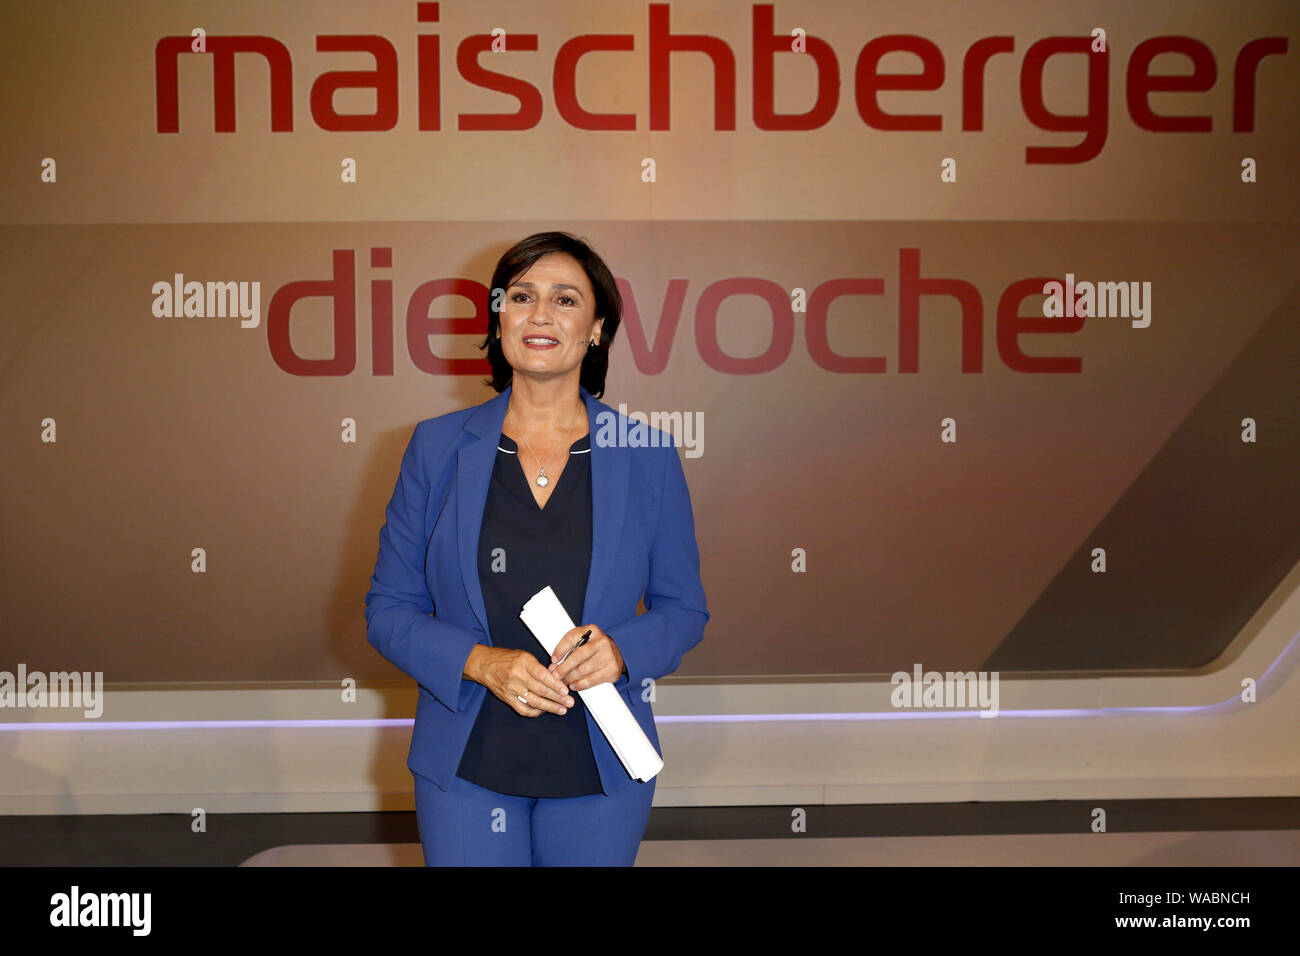 "14 August 2019, Germany (German), Cologne: Presenter Sandra Maischberger is at the WDR Studio for her talk show ""Maischberger - Die Woche"". Photo: asd Stock Photo"